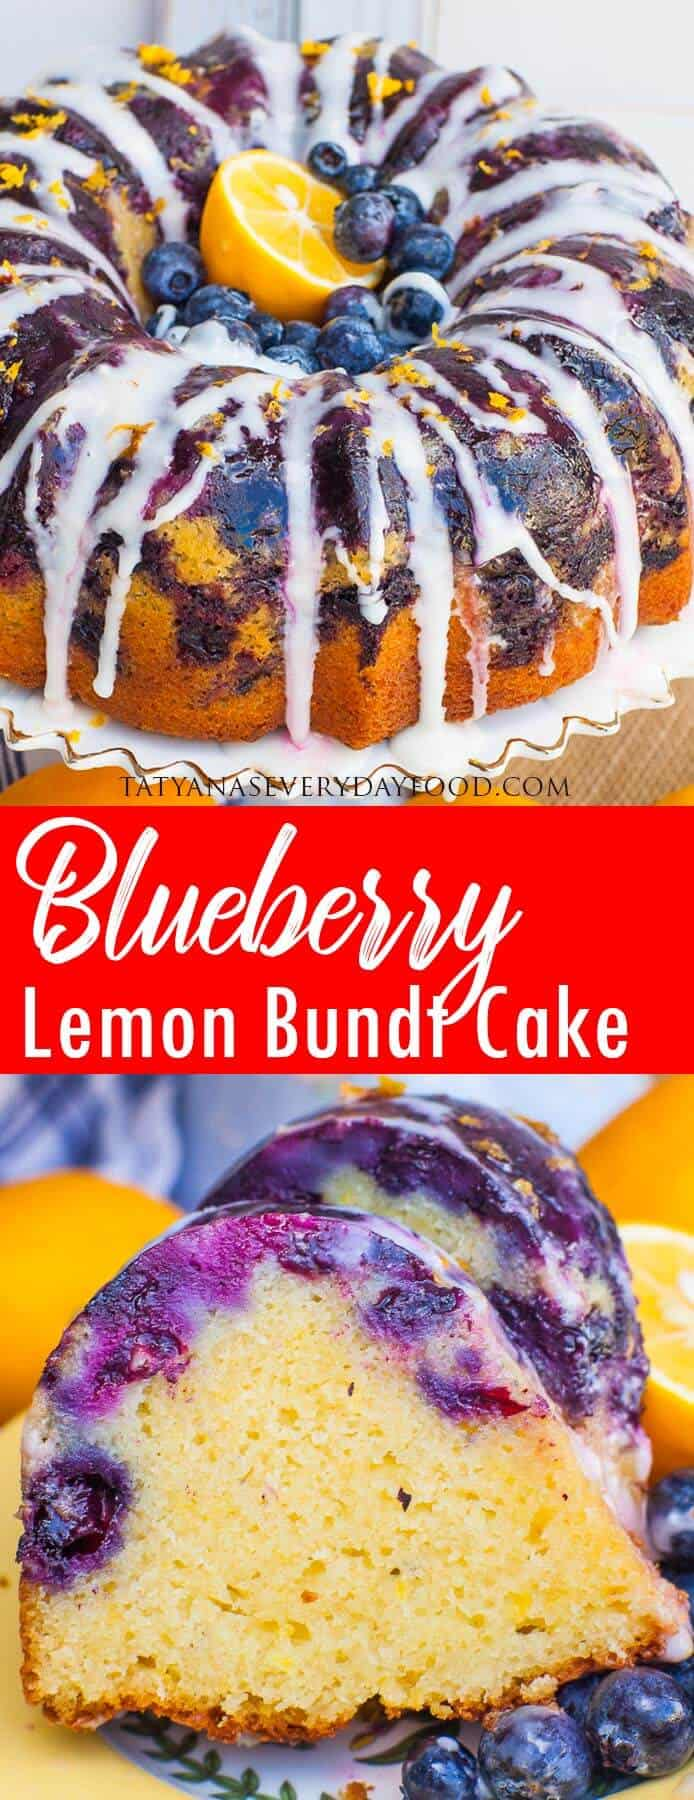 EASY Blueberry Lemon Bundt Cake video recipe